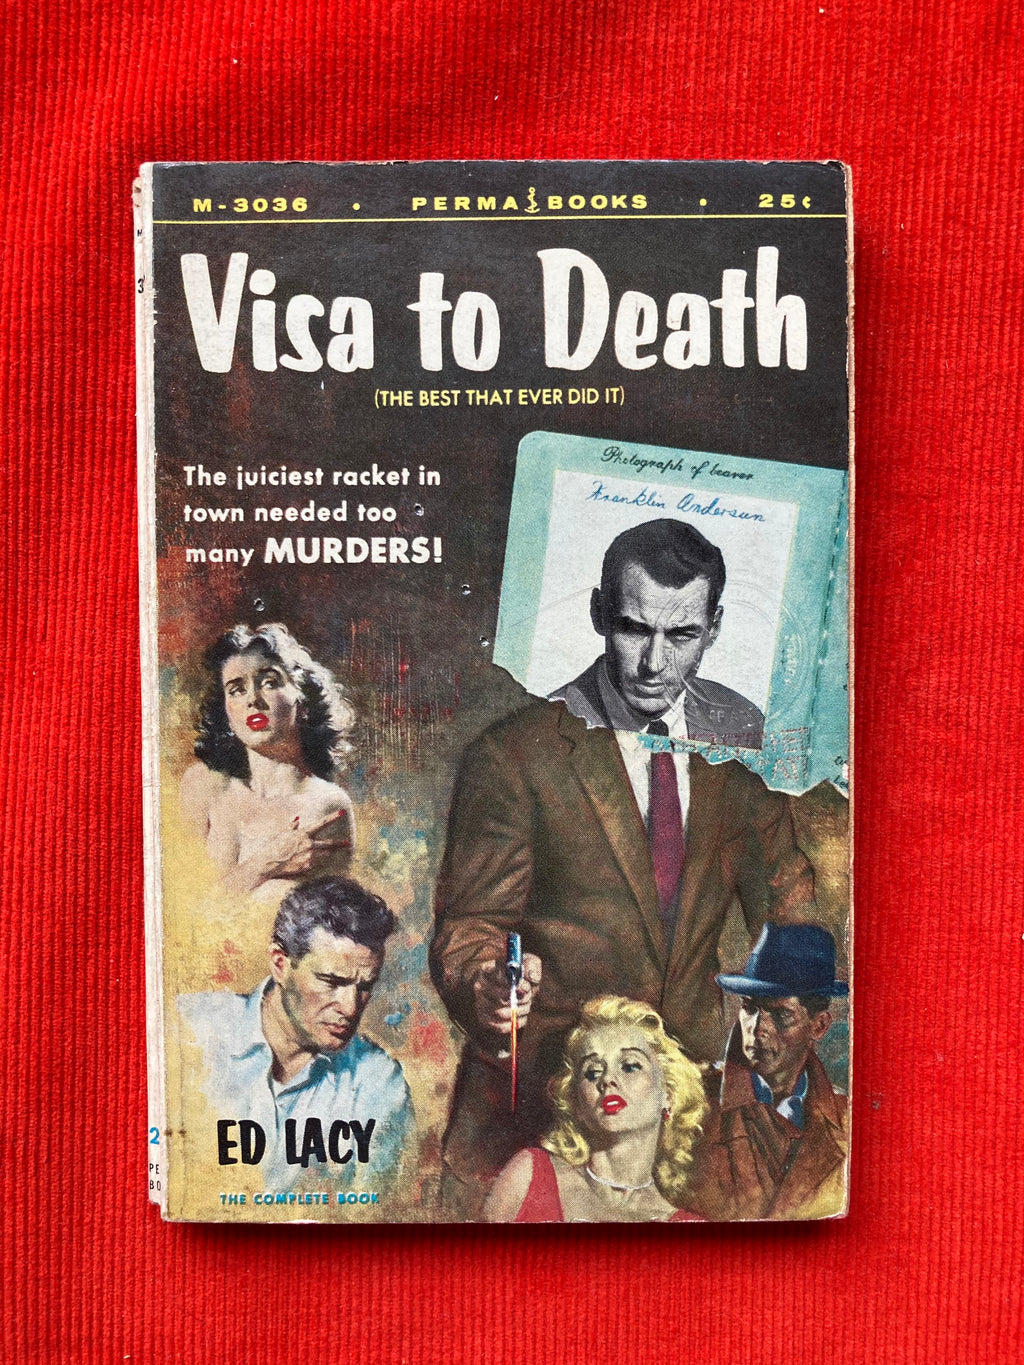 1956 Perma Books, Visa To Death, by Ed Lacy